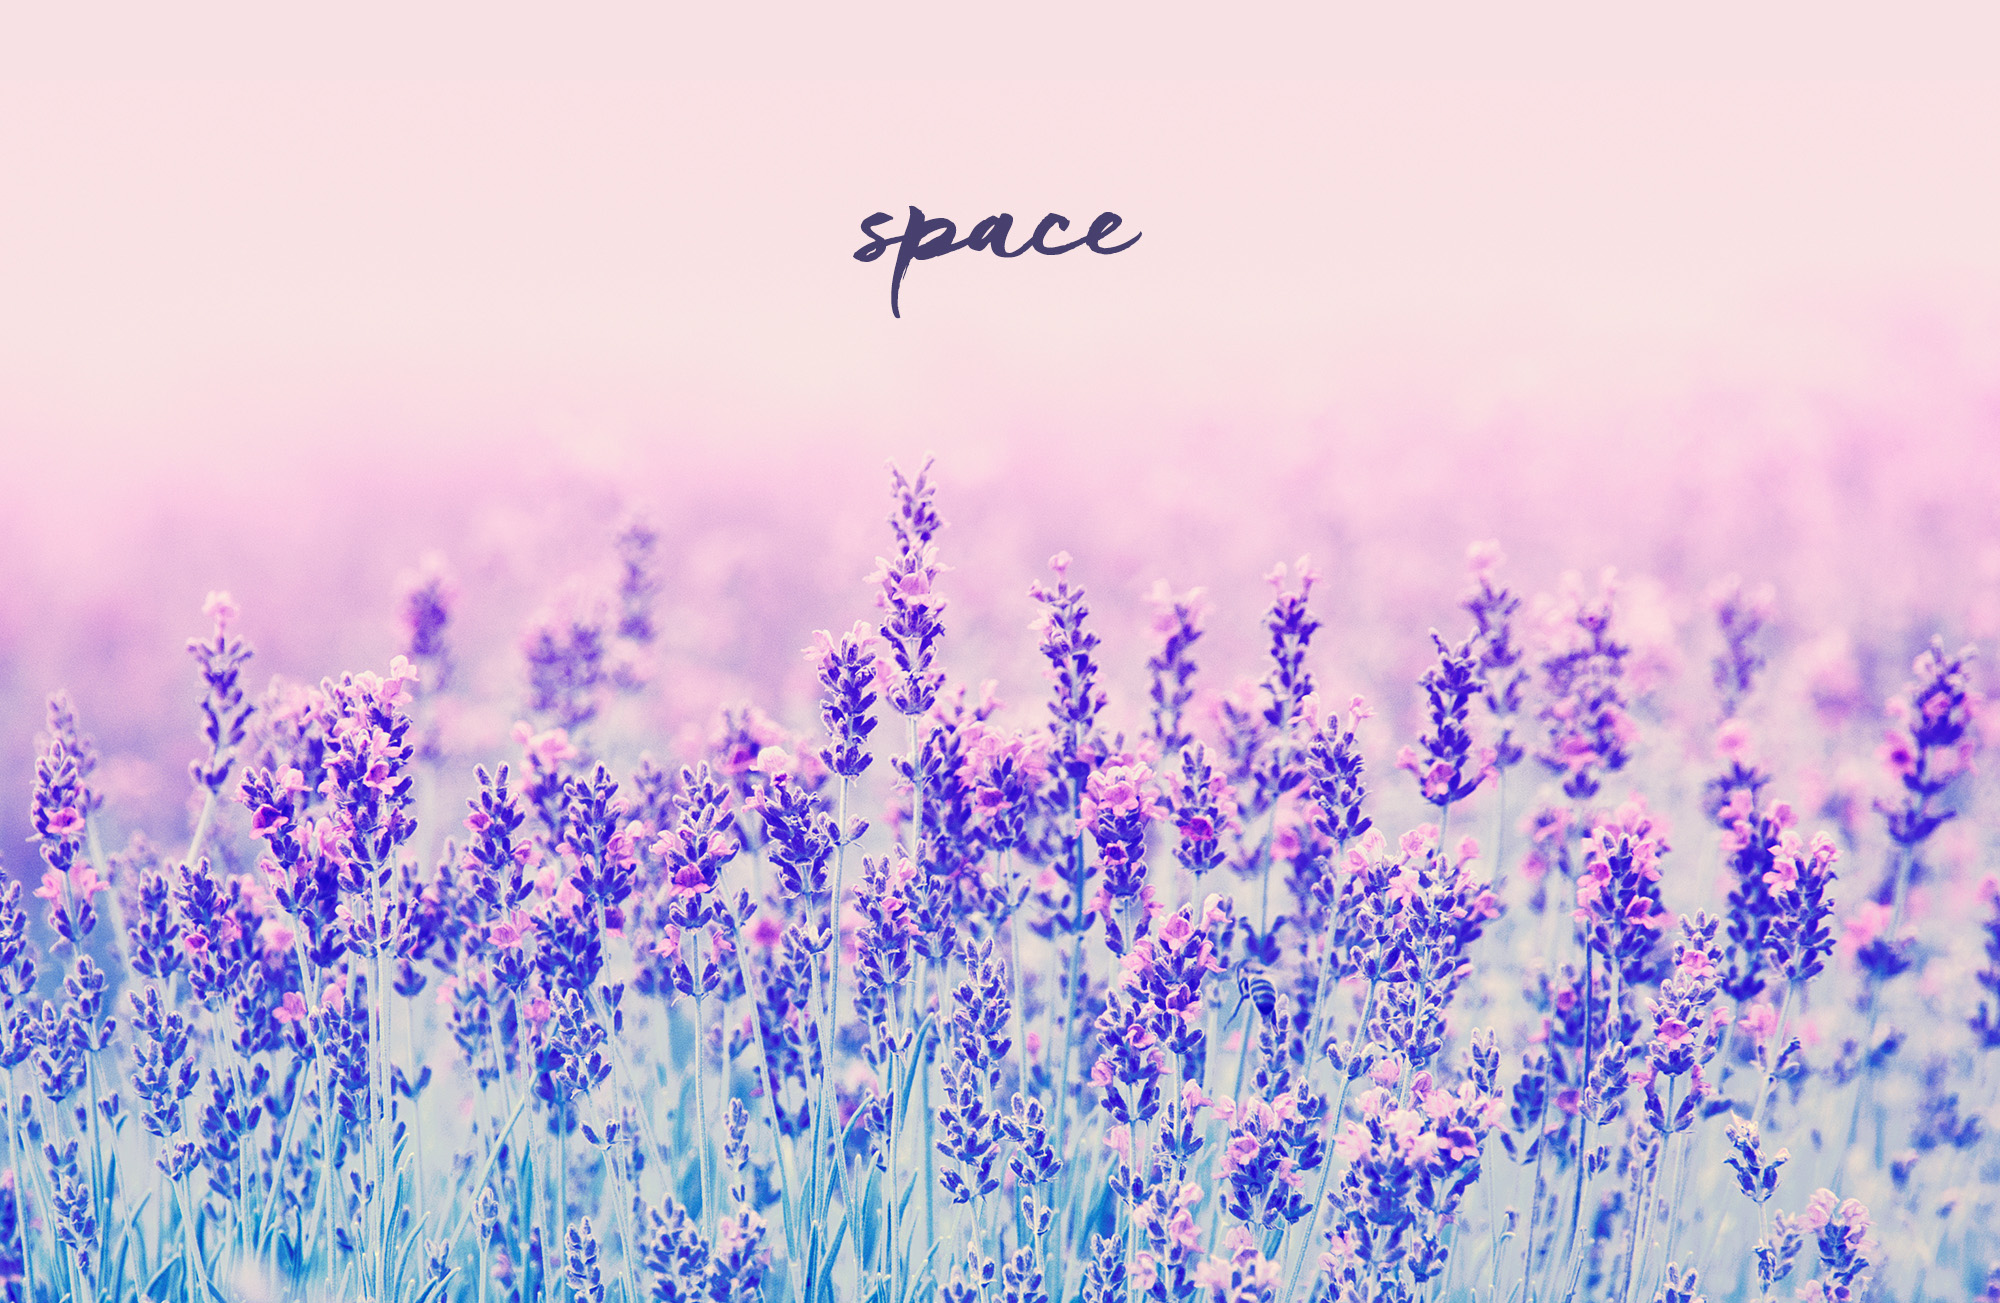 harkenpress-oneword-wallpaper-space.jpg